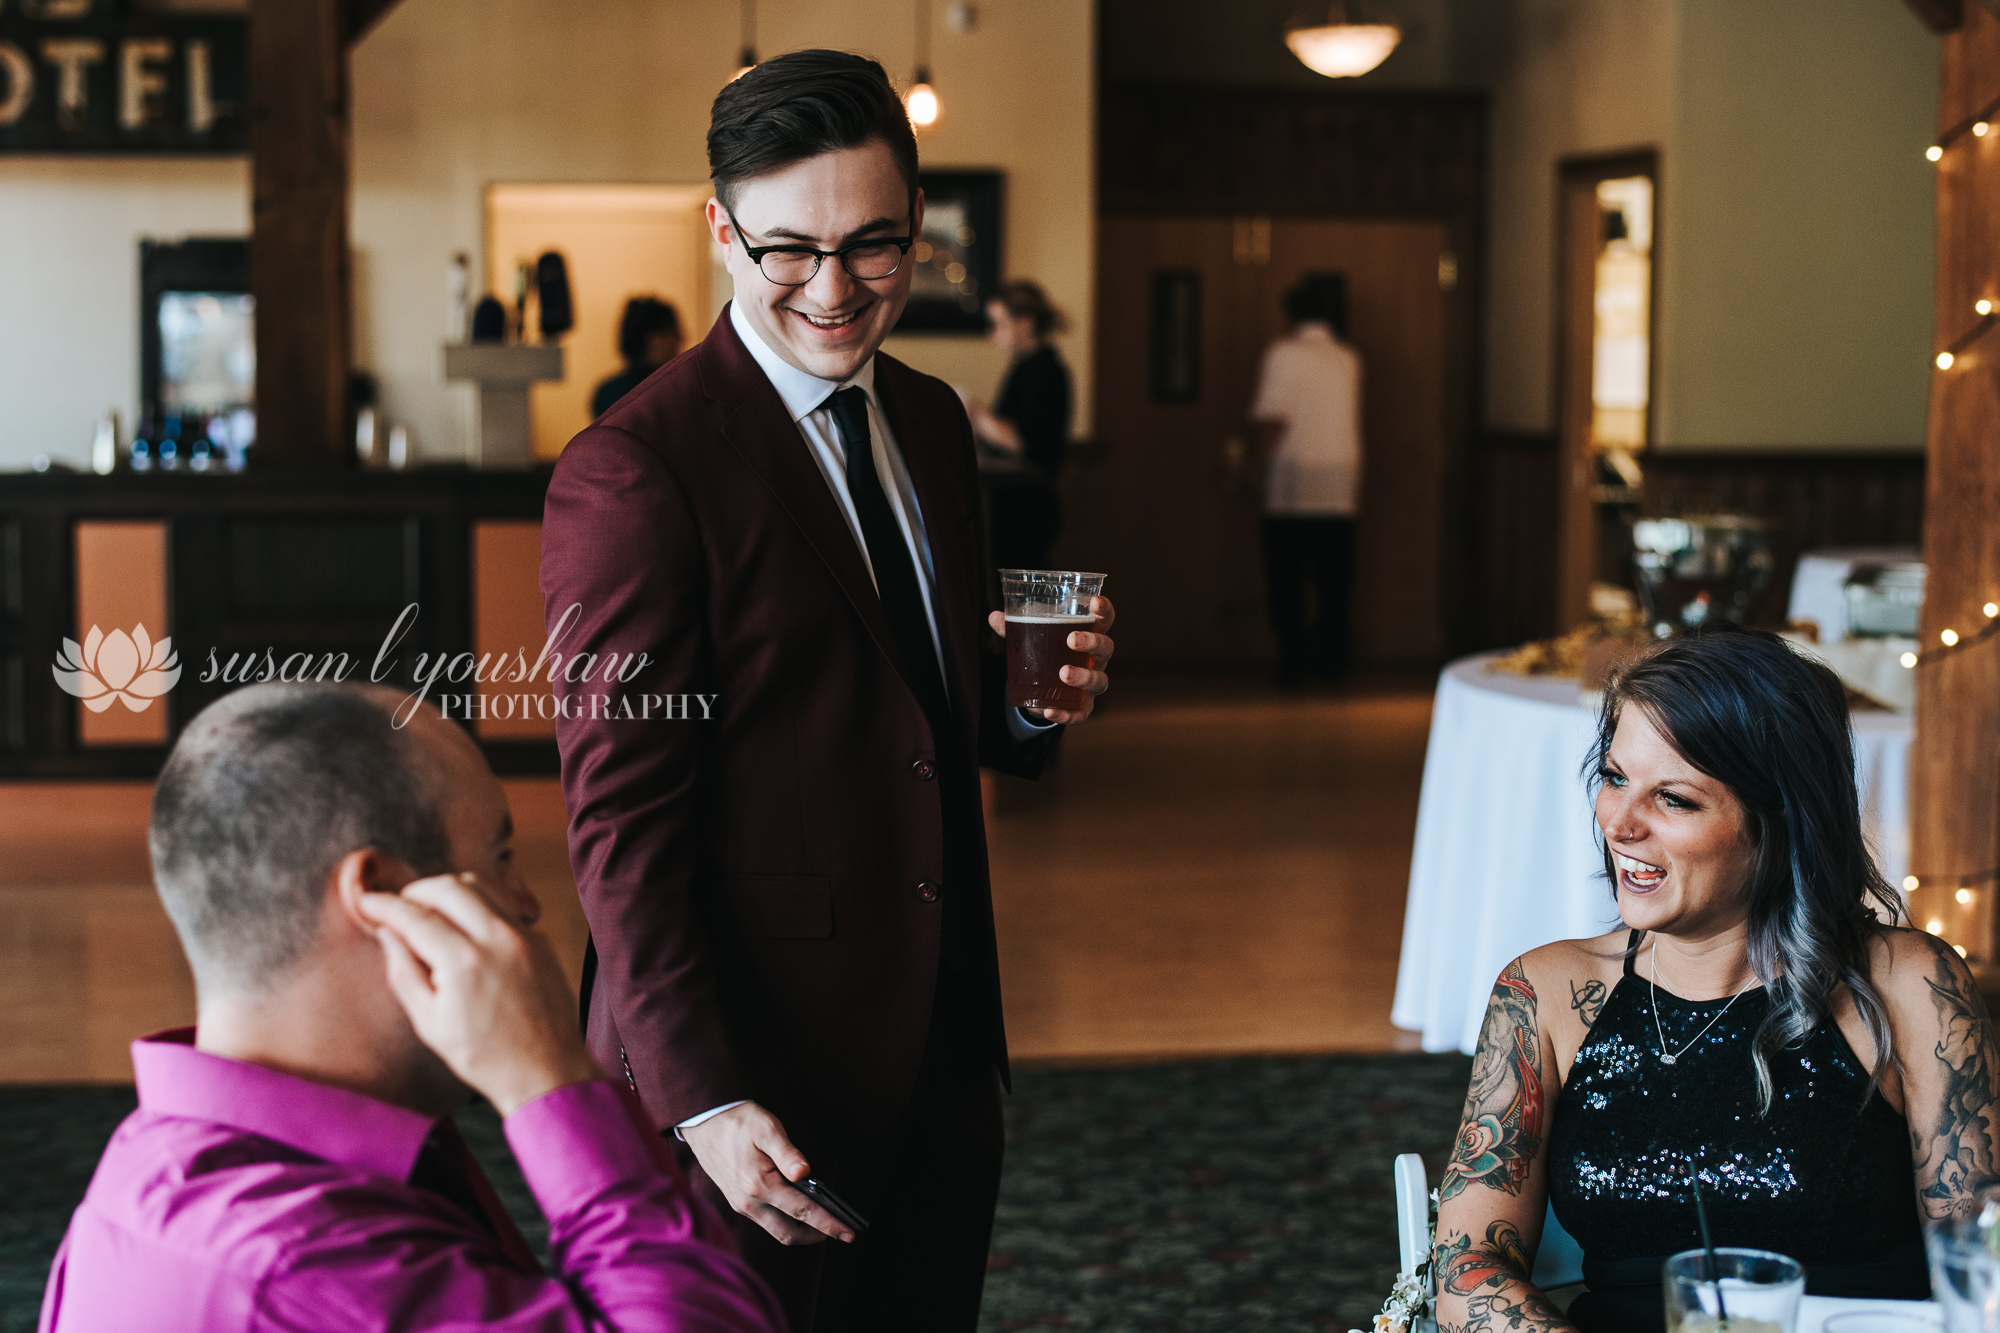 Chynna and John Wedding 05-18-2019 SLY Photography-116.jpg